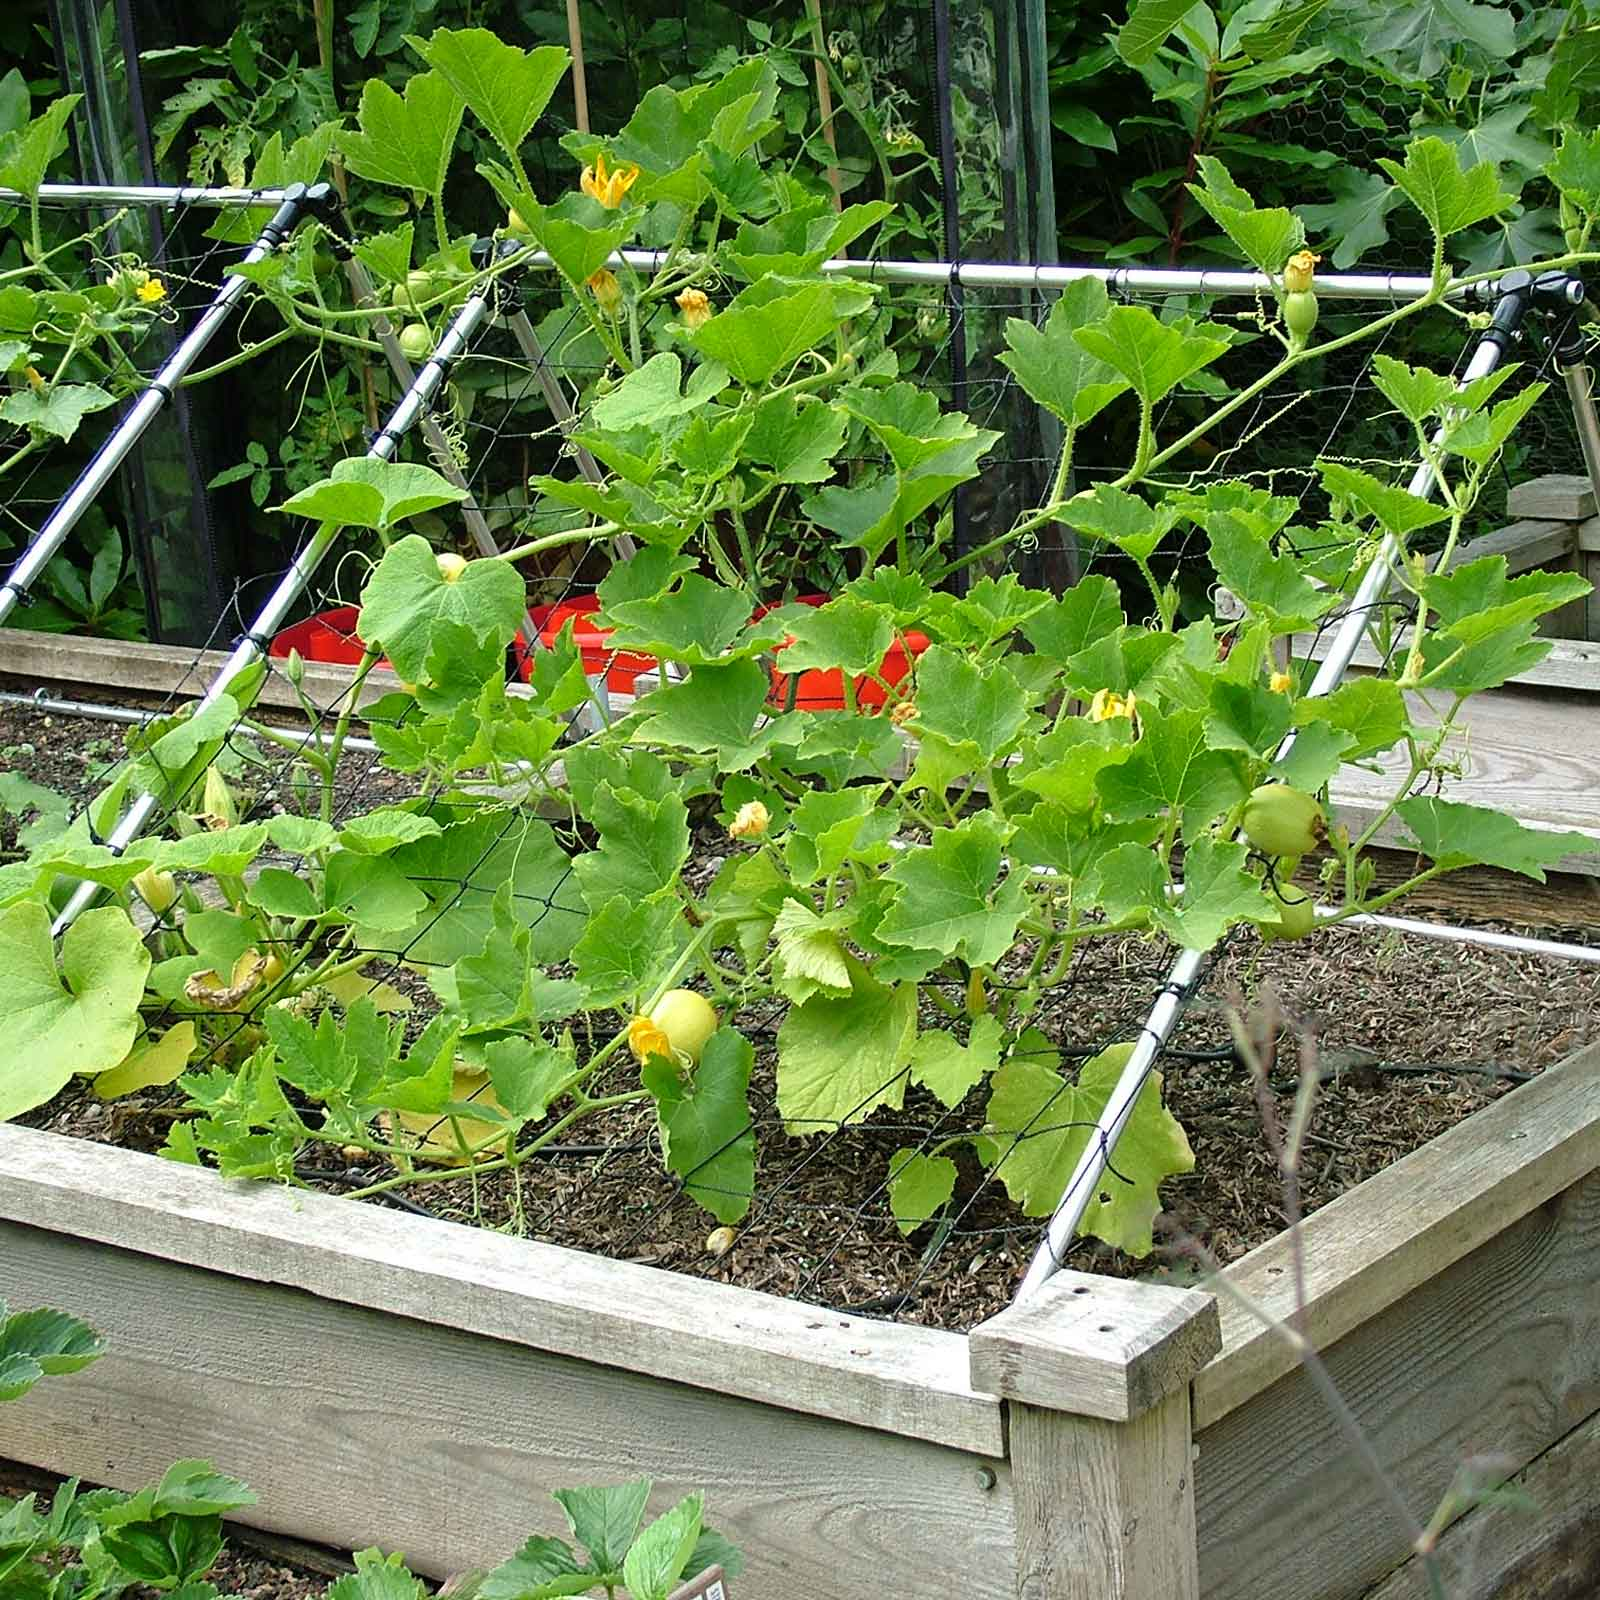 Growing Zucchini On A Trellis: Harrod Slot & Lock® Squash/Cucumber Climbing Frame